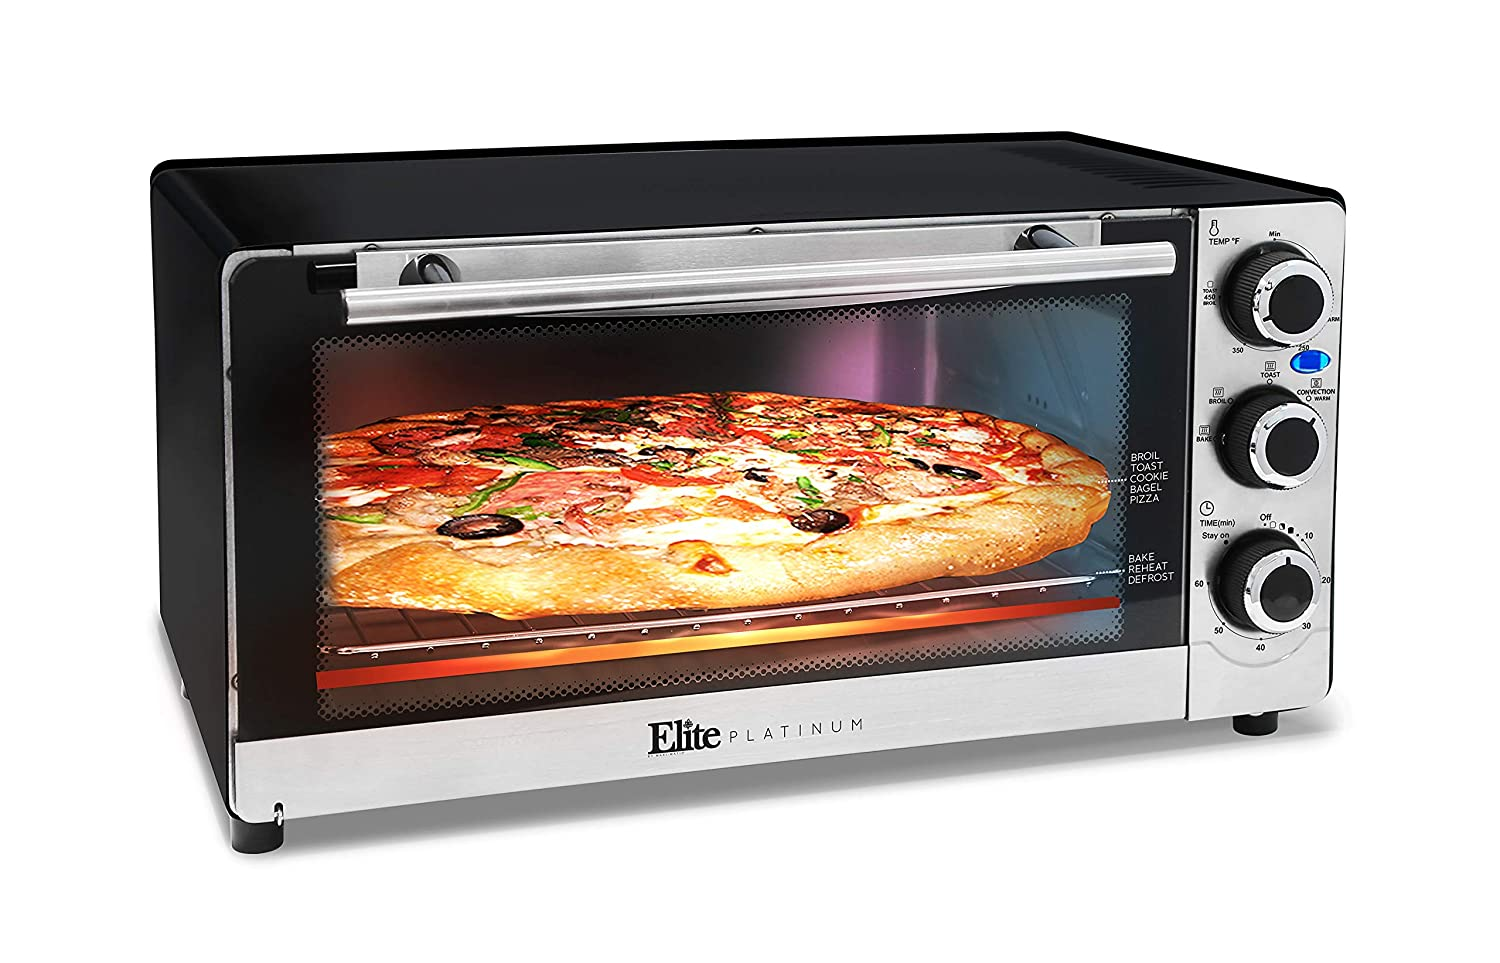 Maximatic ETO-140C Elite Platinum Stainless Steel 6 Slice Convection Toaster Oven Silver